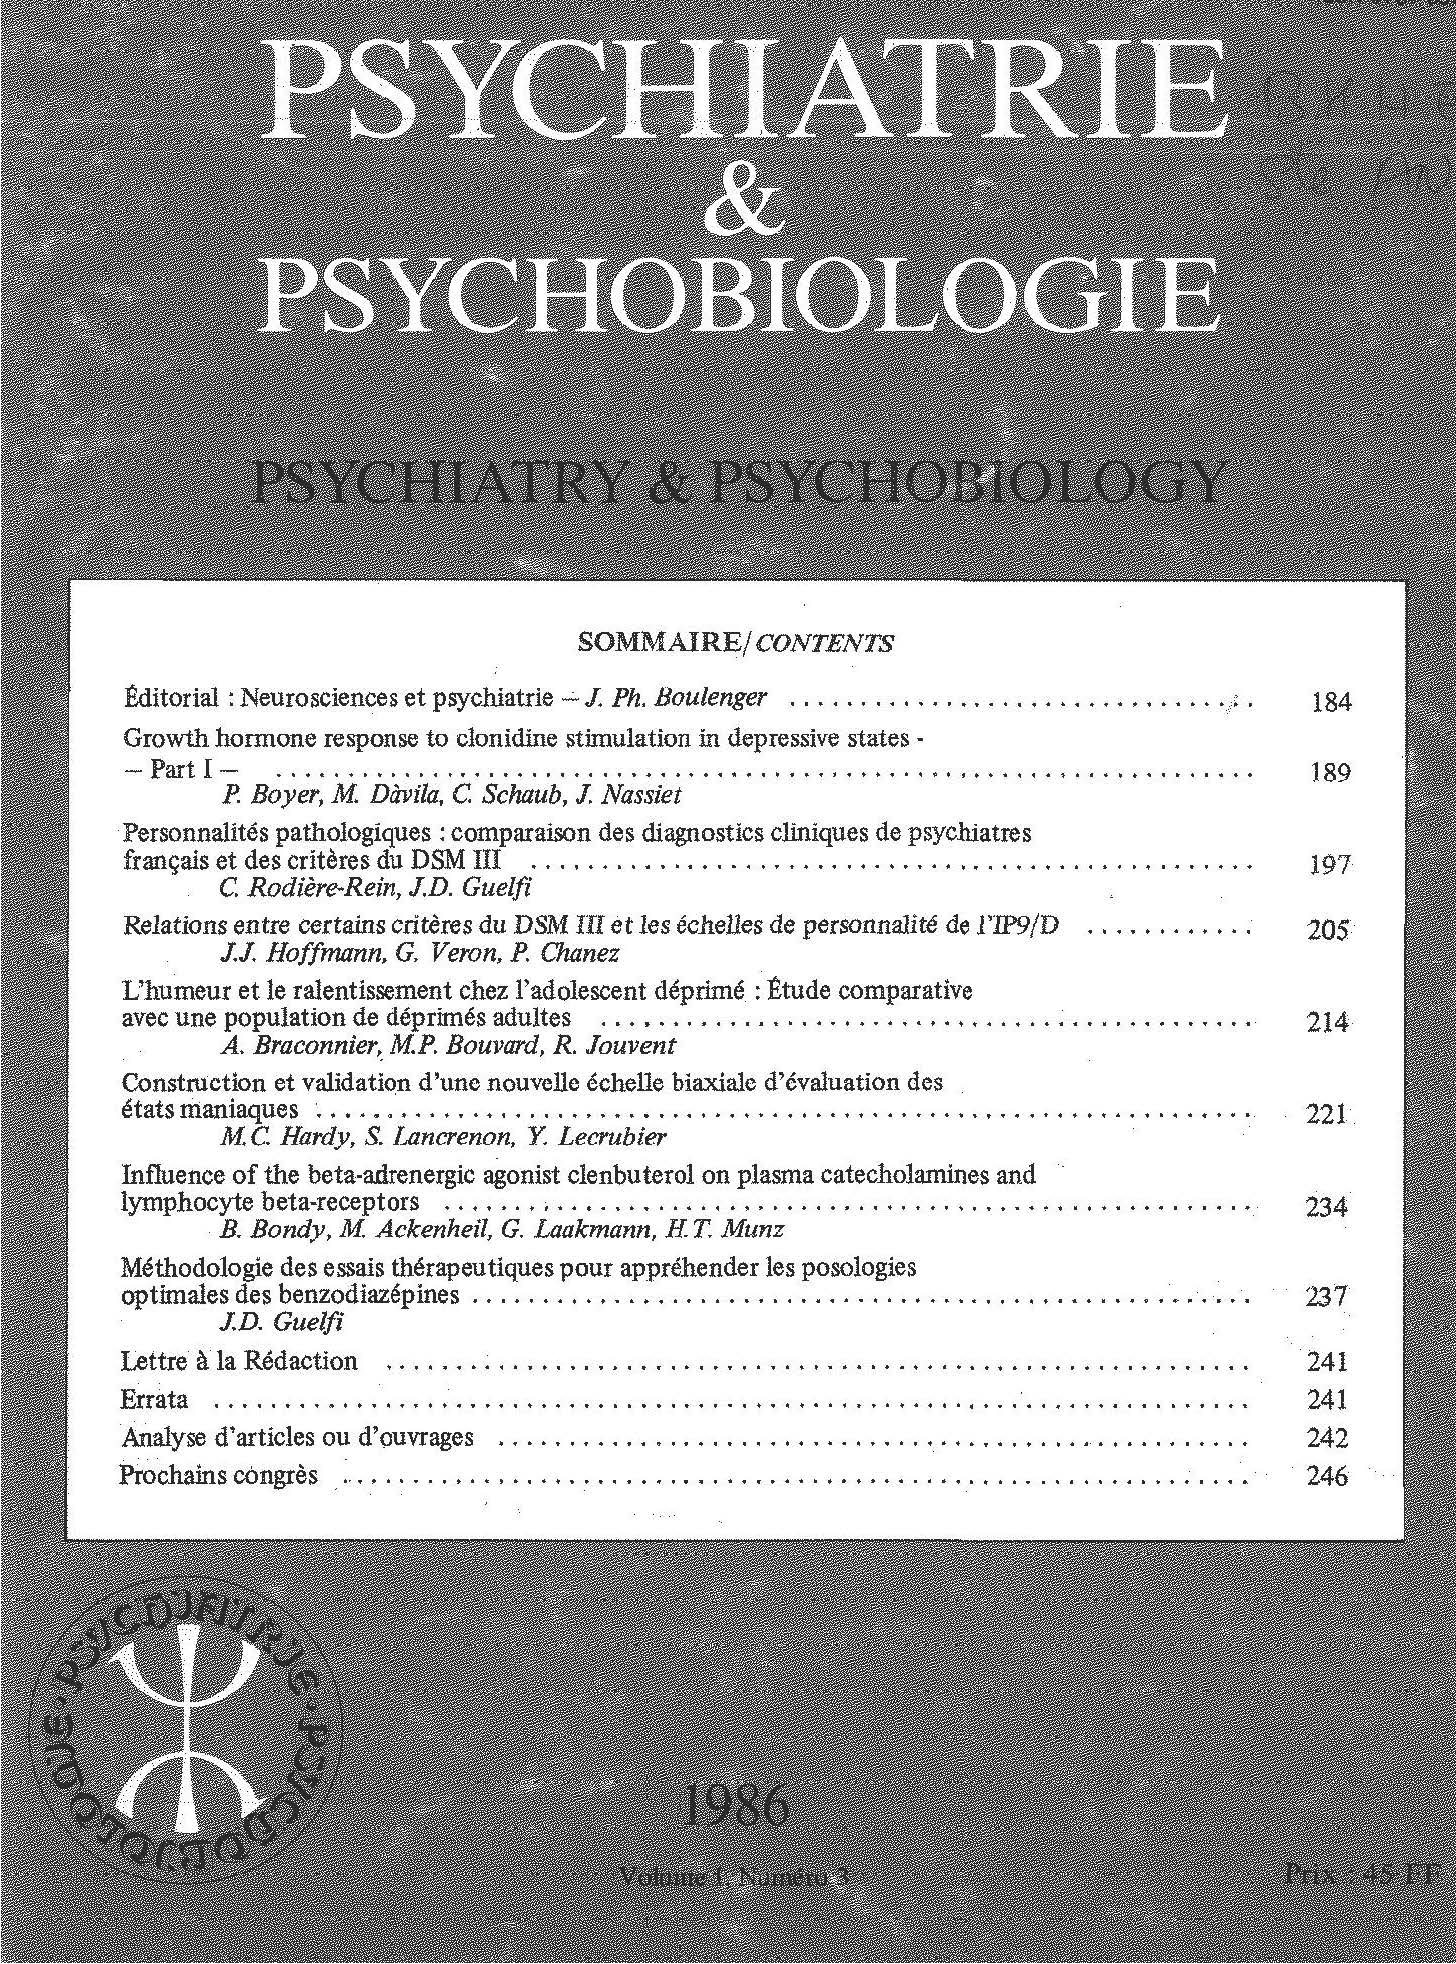 Psychiatry and Psychobiology